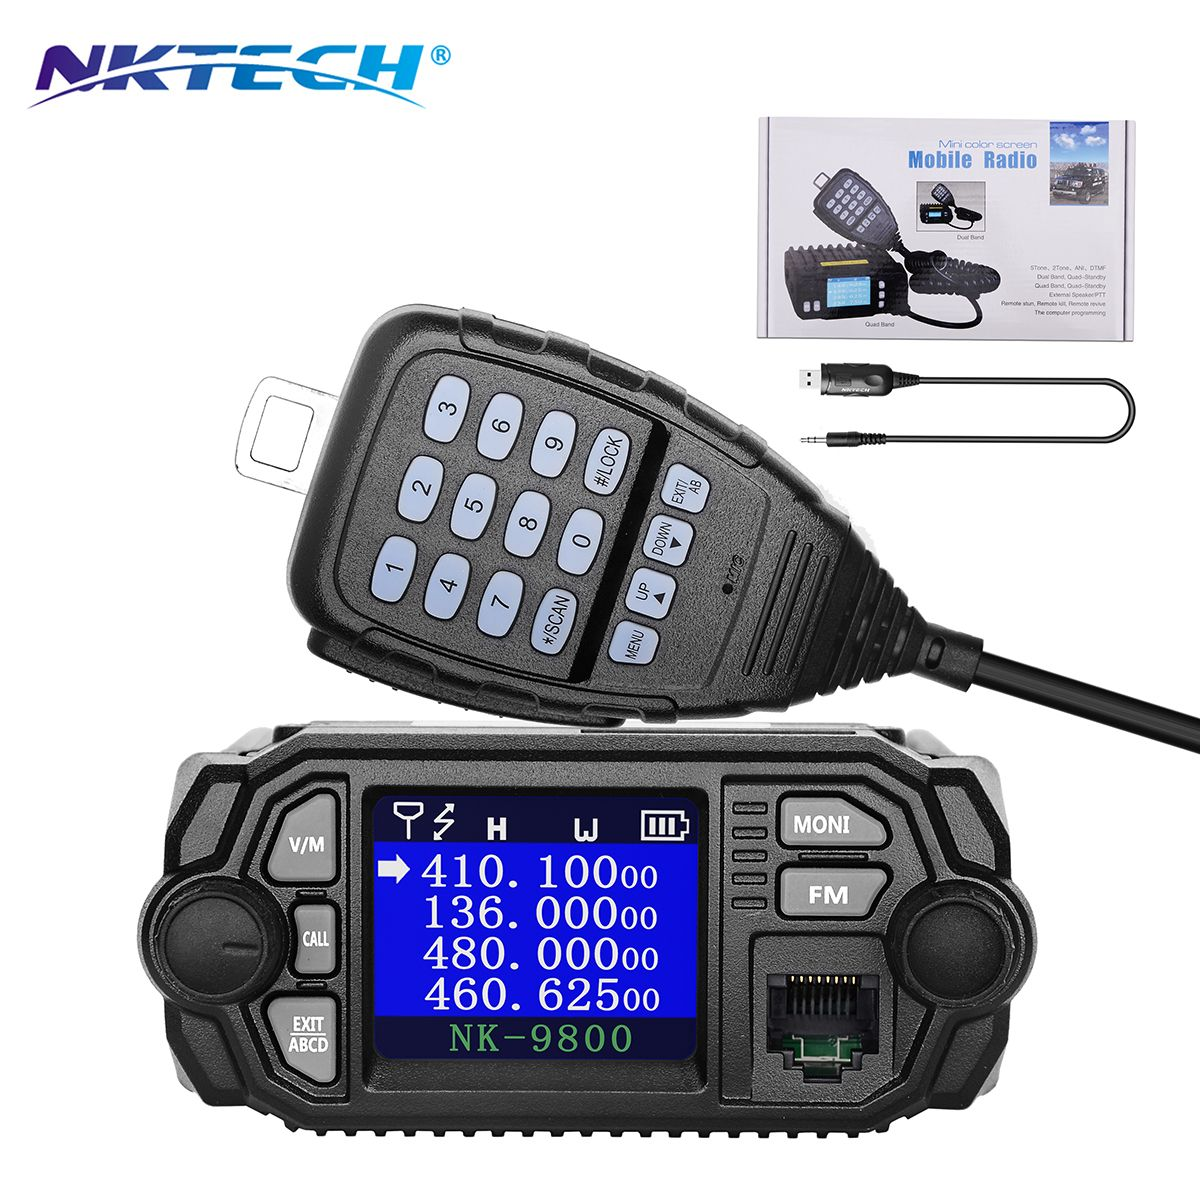 NKTECH NK-9800 Dual Band Quad Standby 5Tone 2Tone CTCSS/DCS 25W VHF 20W UHF Car/Trunk Mobile Transceiver + USB Programming Cable